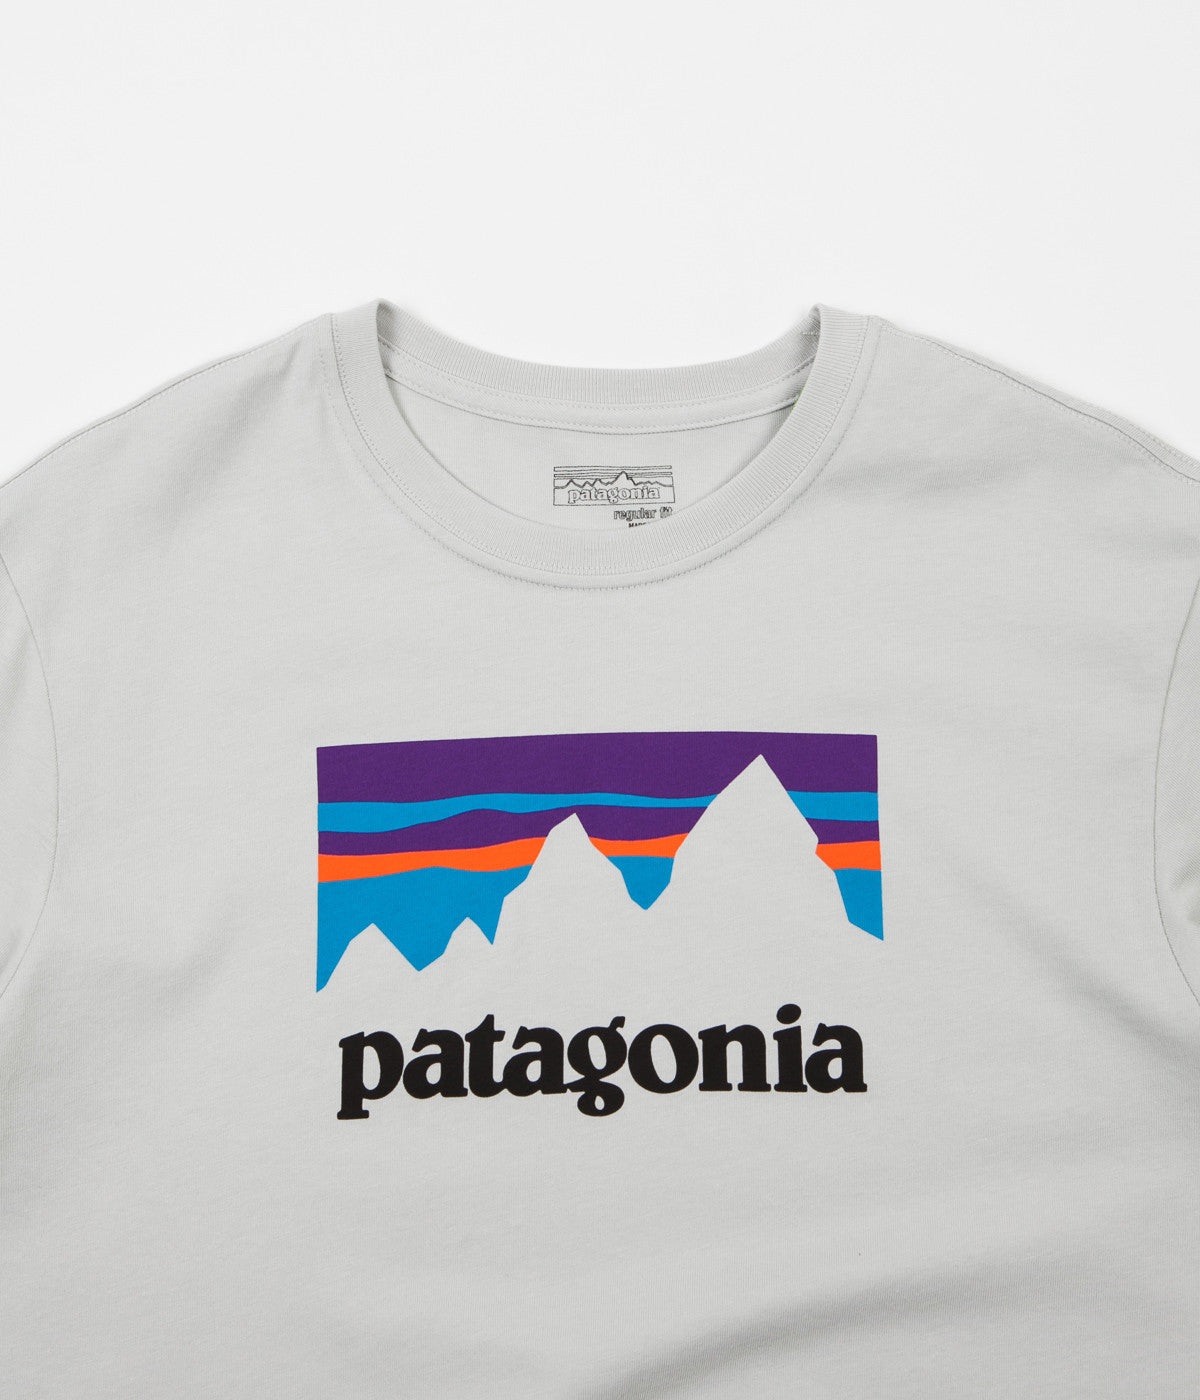 Patagonia Shop Sticker T-Shirt - Tailored Grey